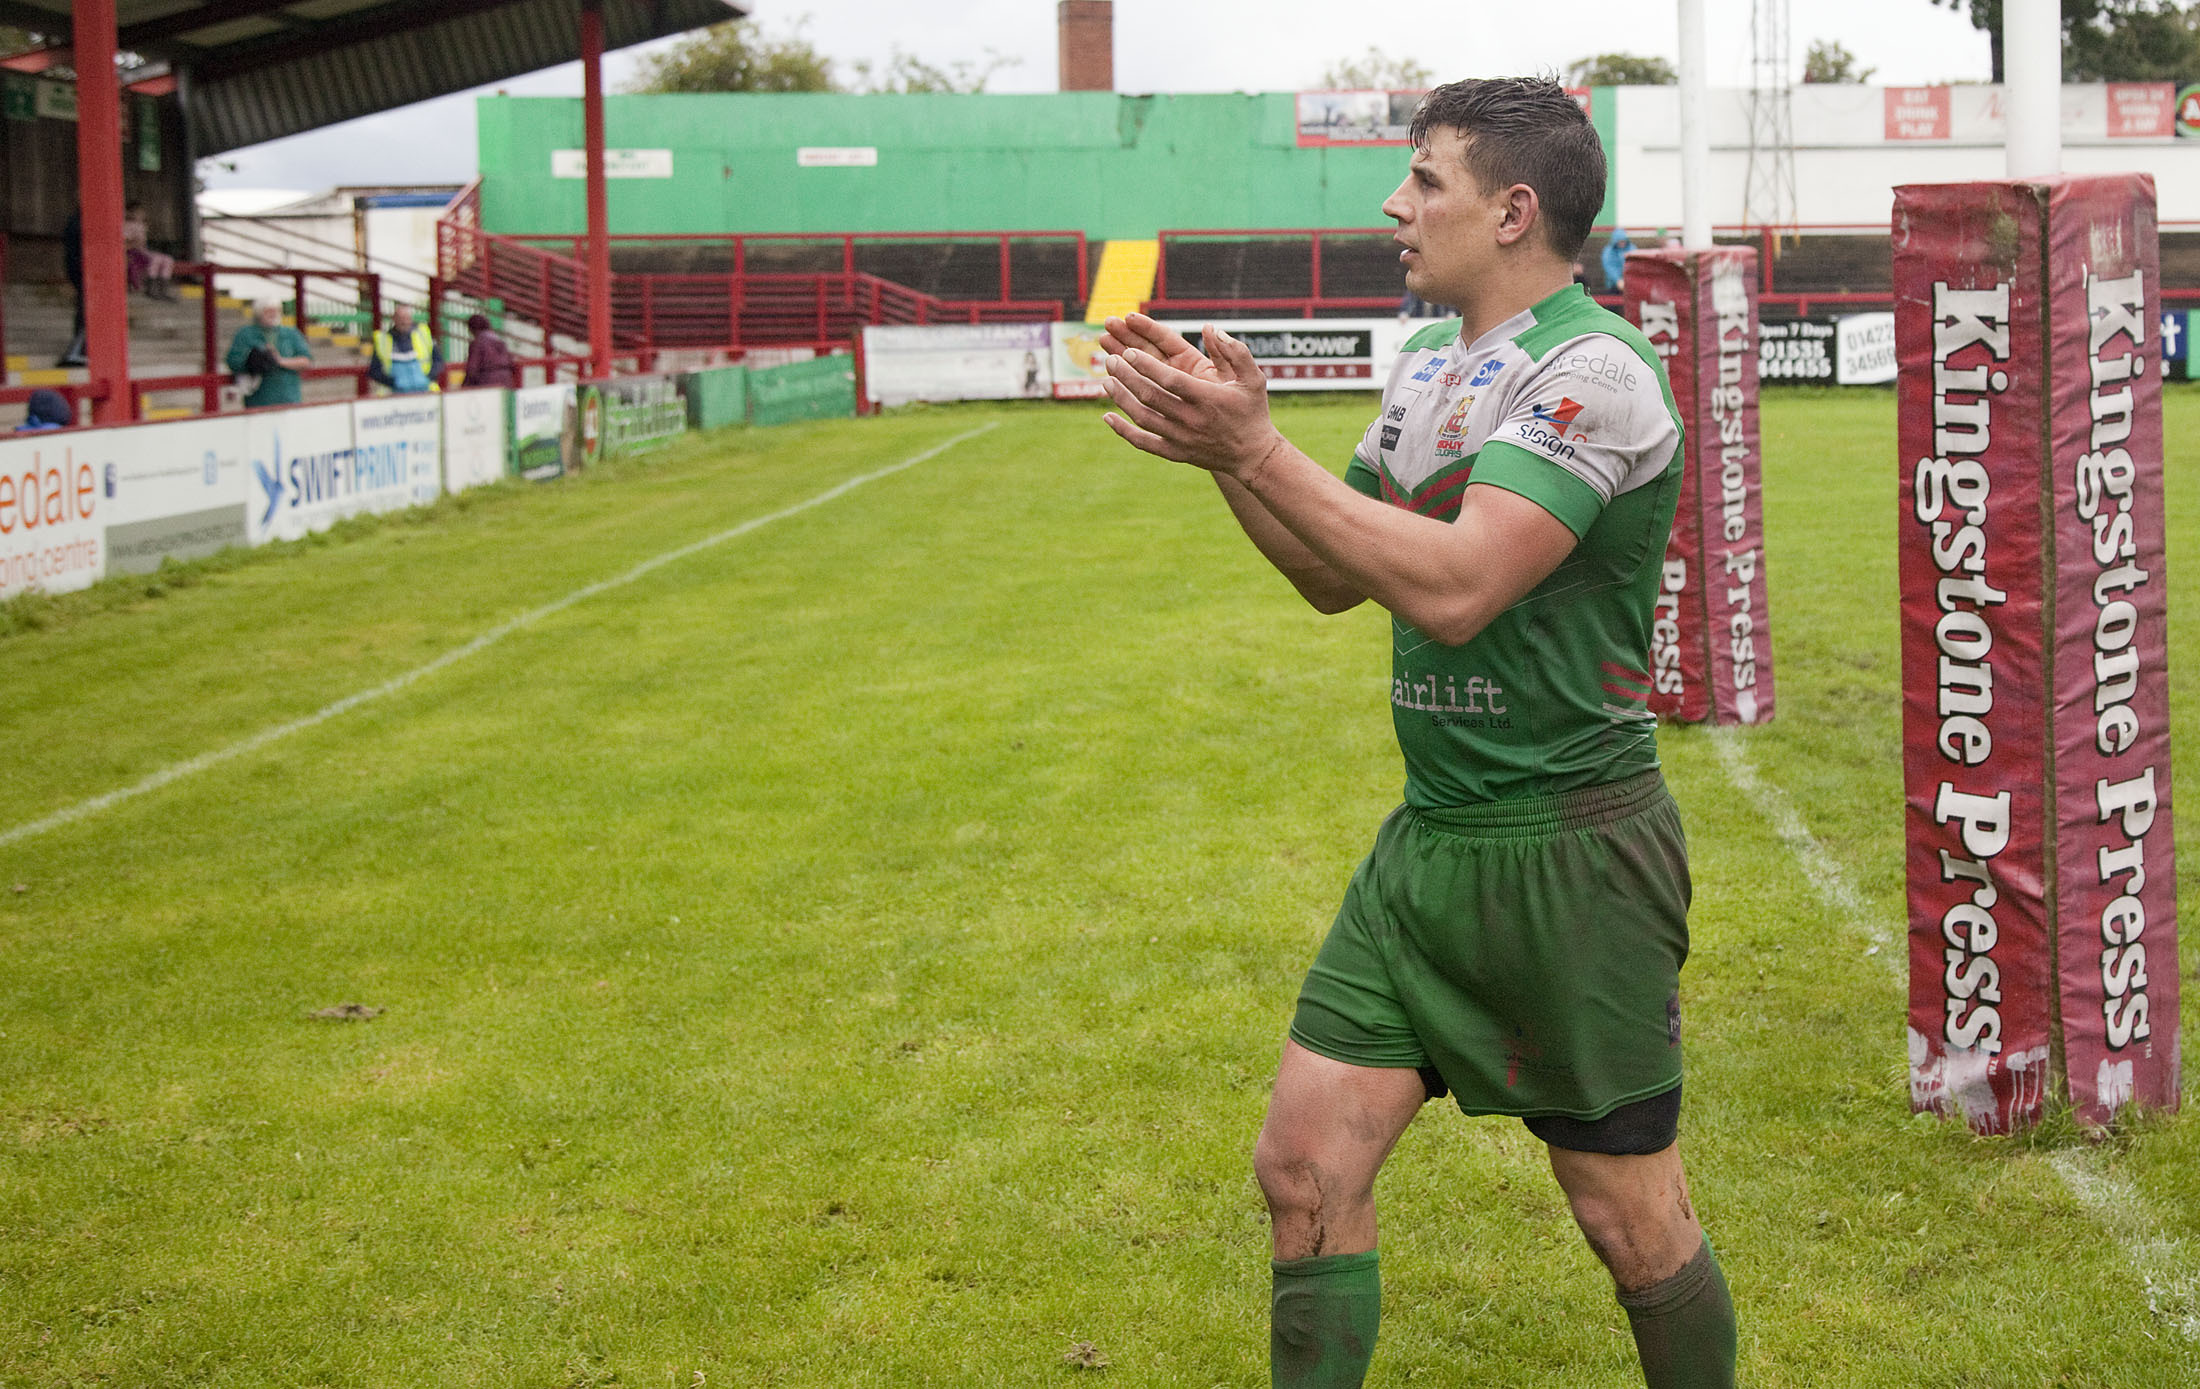 James Feather applauds the Cougar Park faithful in his last home game before retiring and moving into a coaching role with Keighley